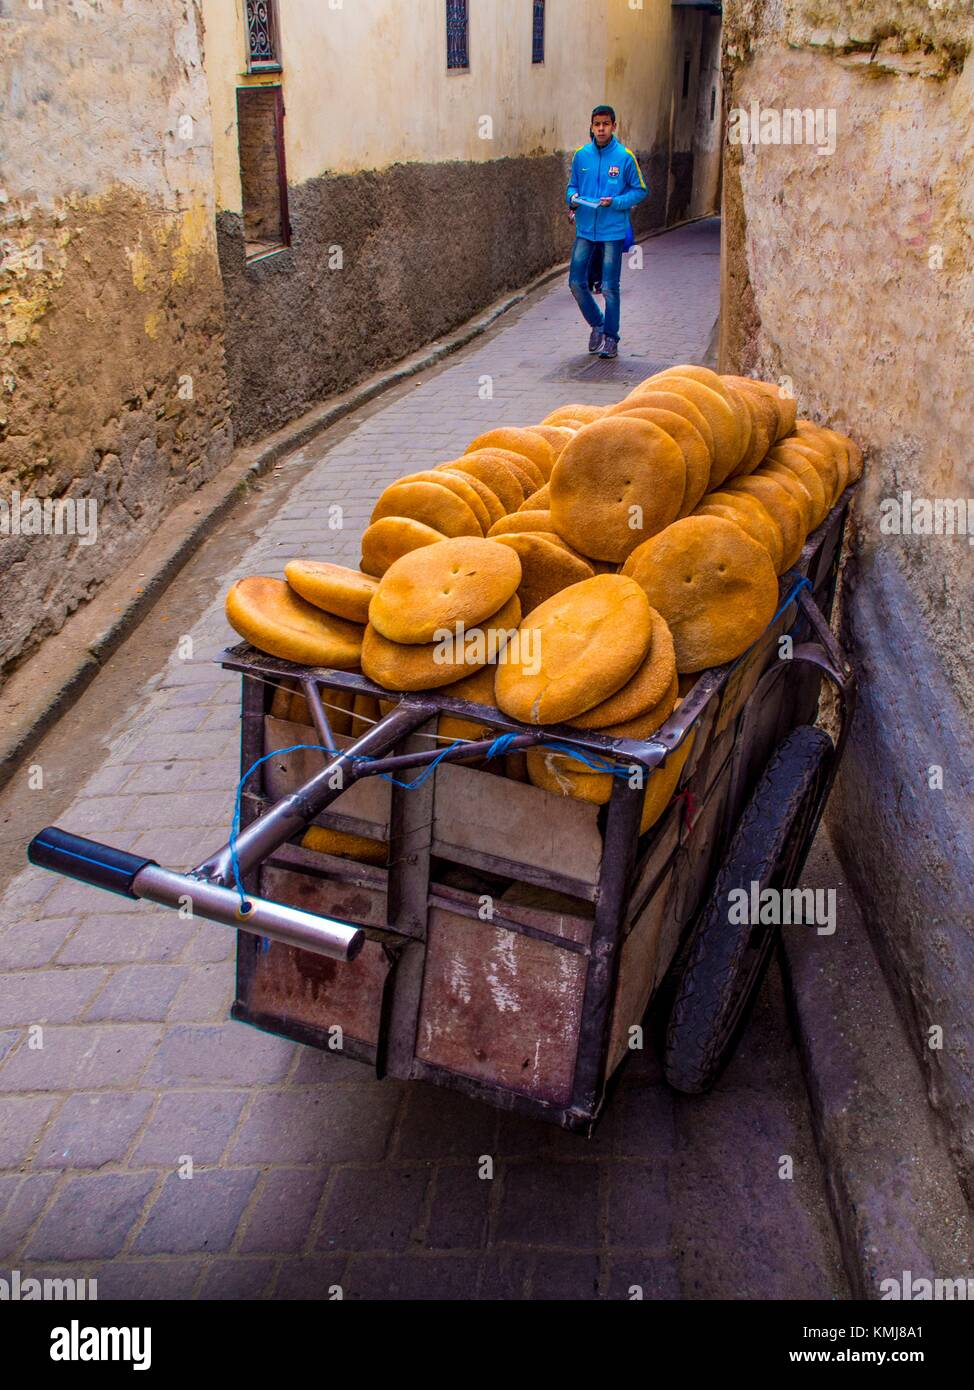 Morocco, Fes, cart full of breads, in the ''Medina'' (old part) of Fes. - Stock Image